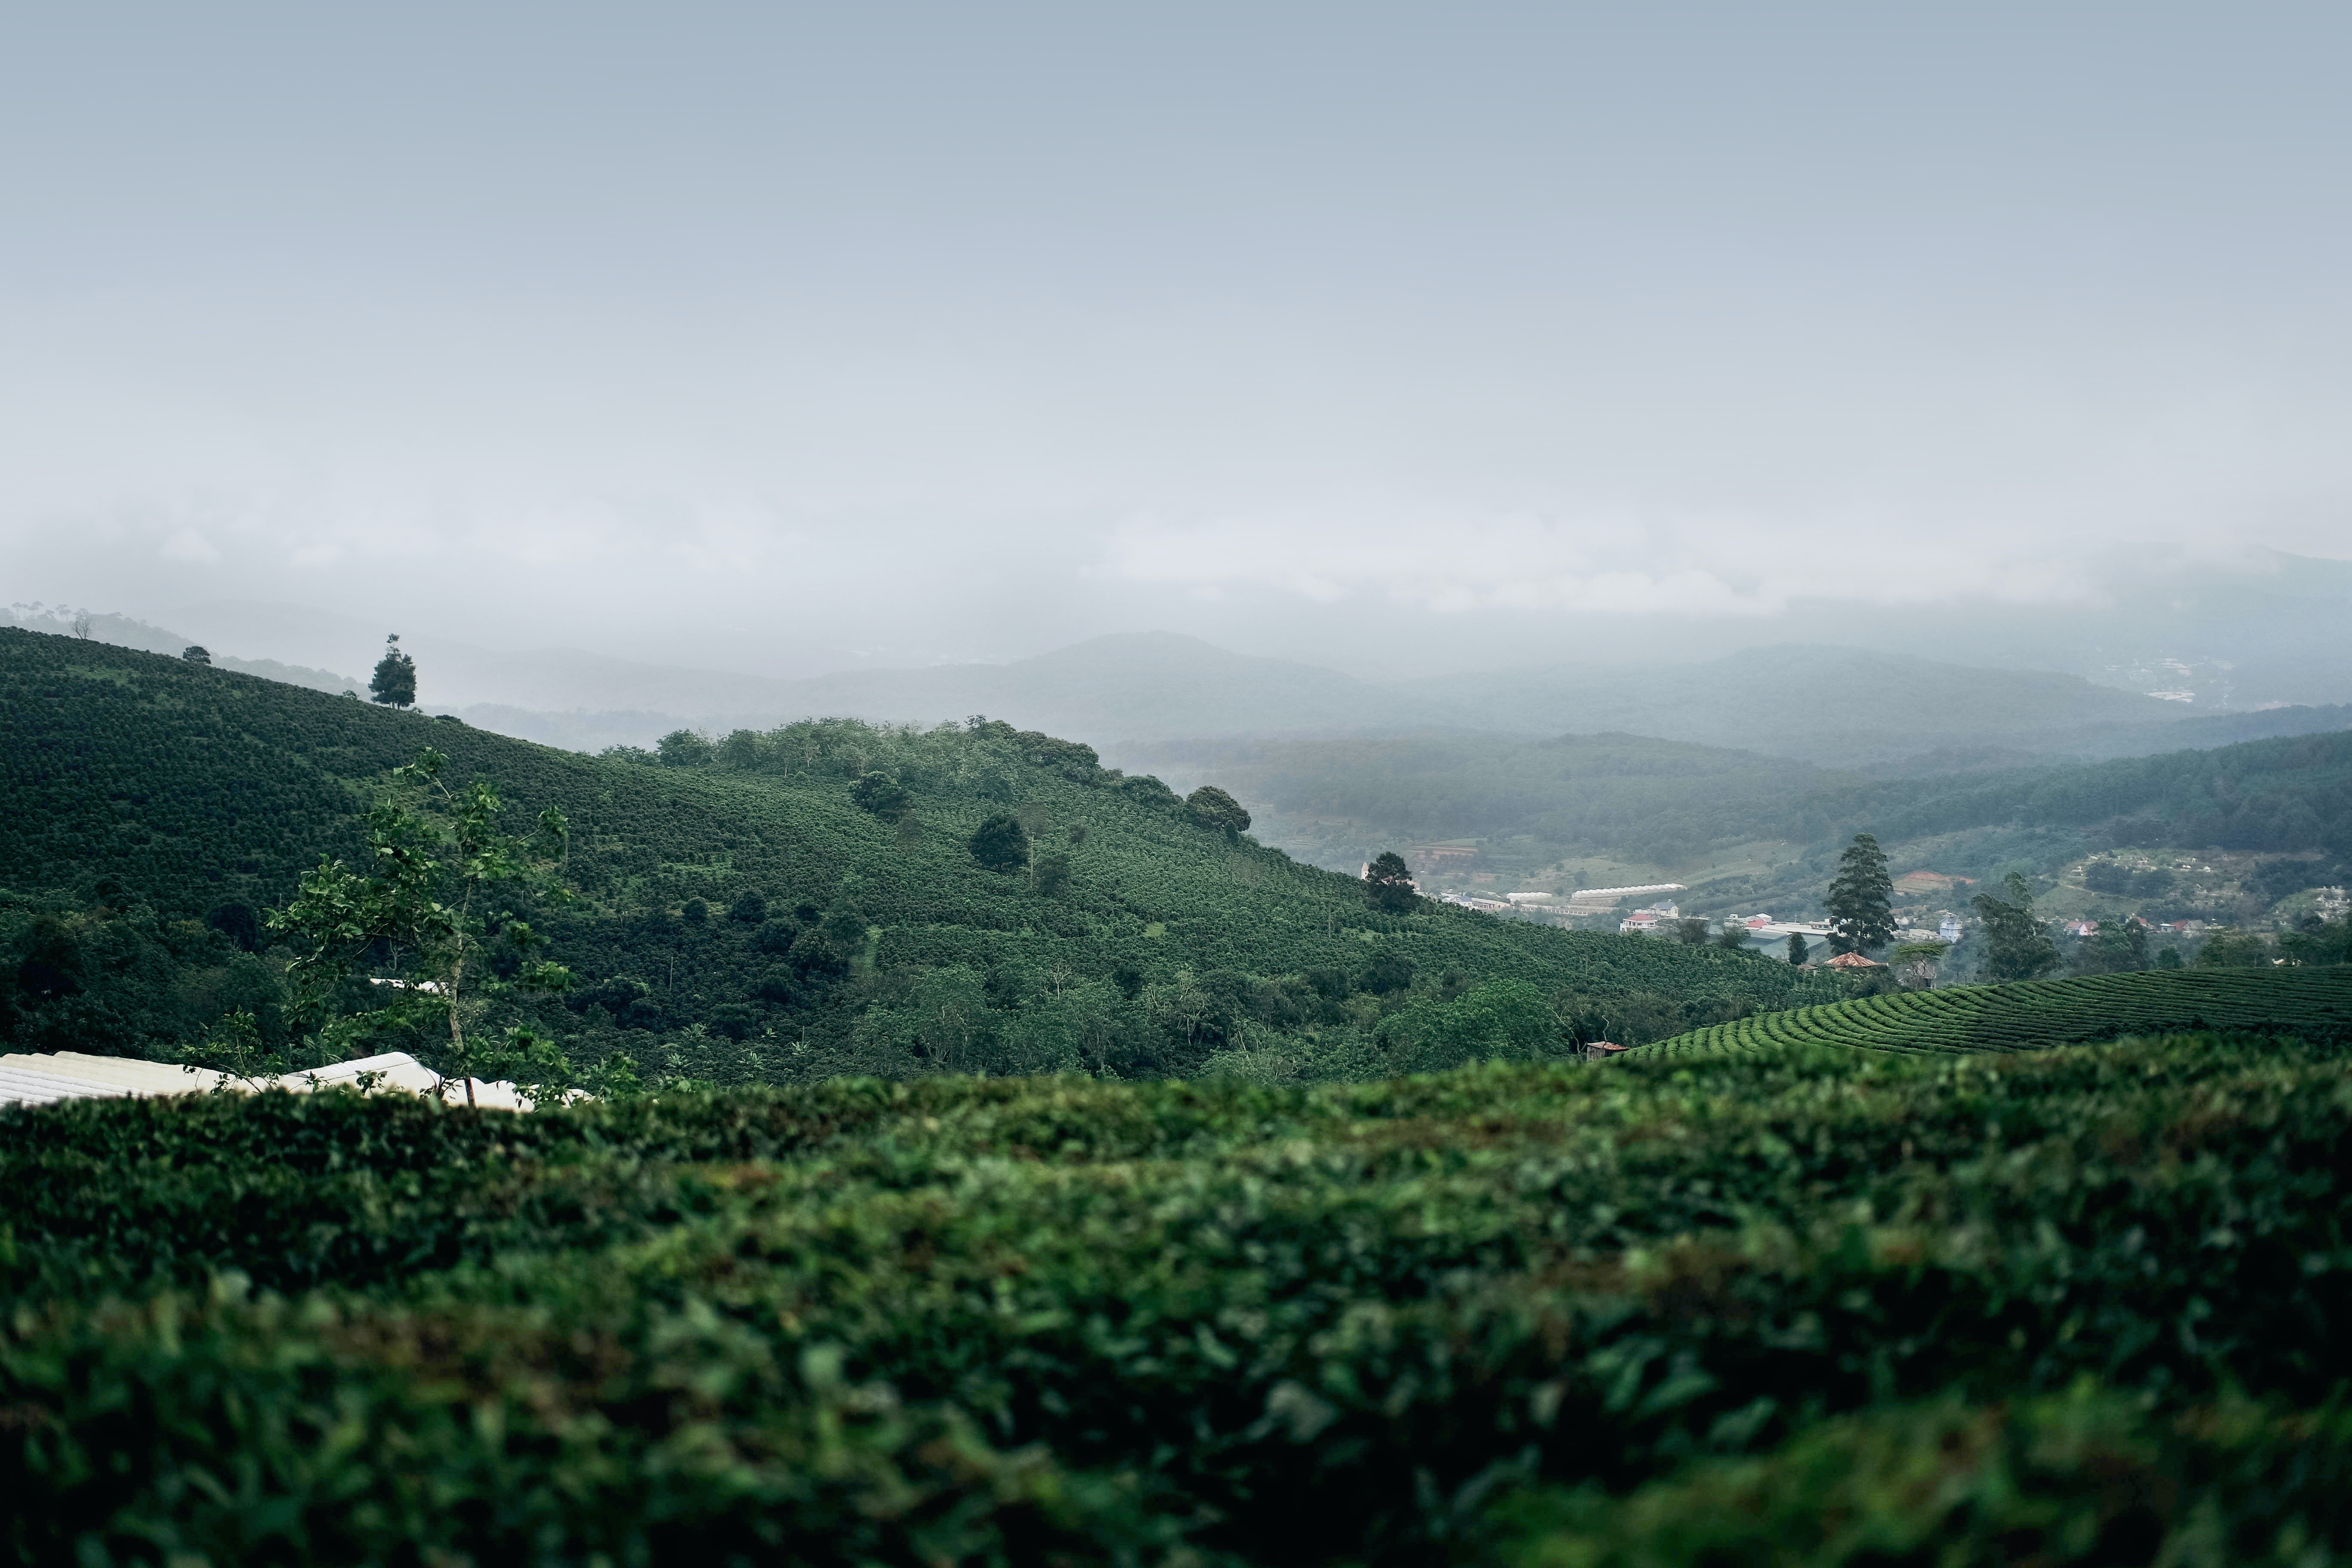 landscape photography of hills under foggy sky